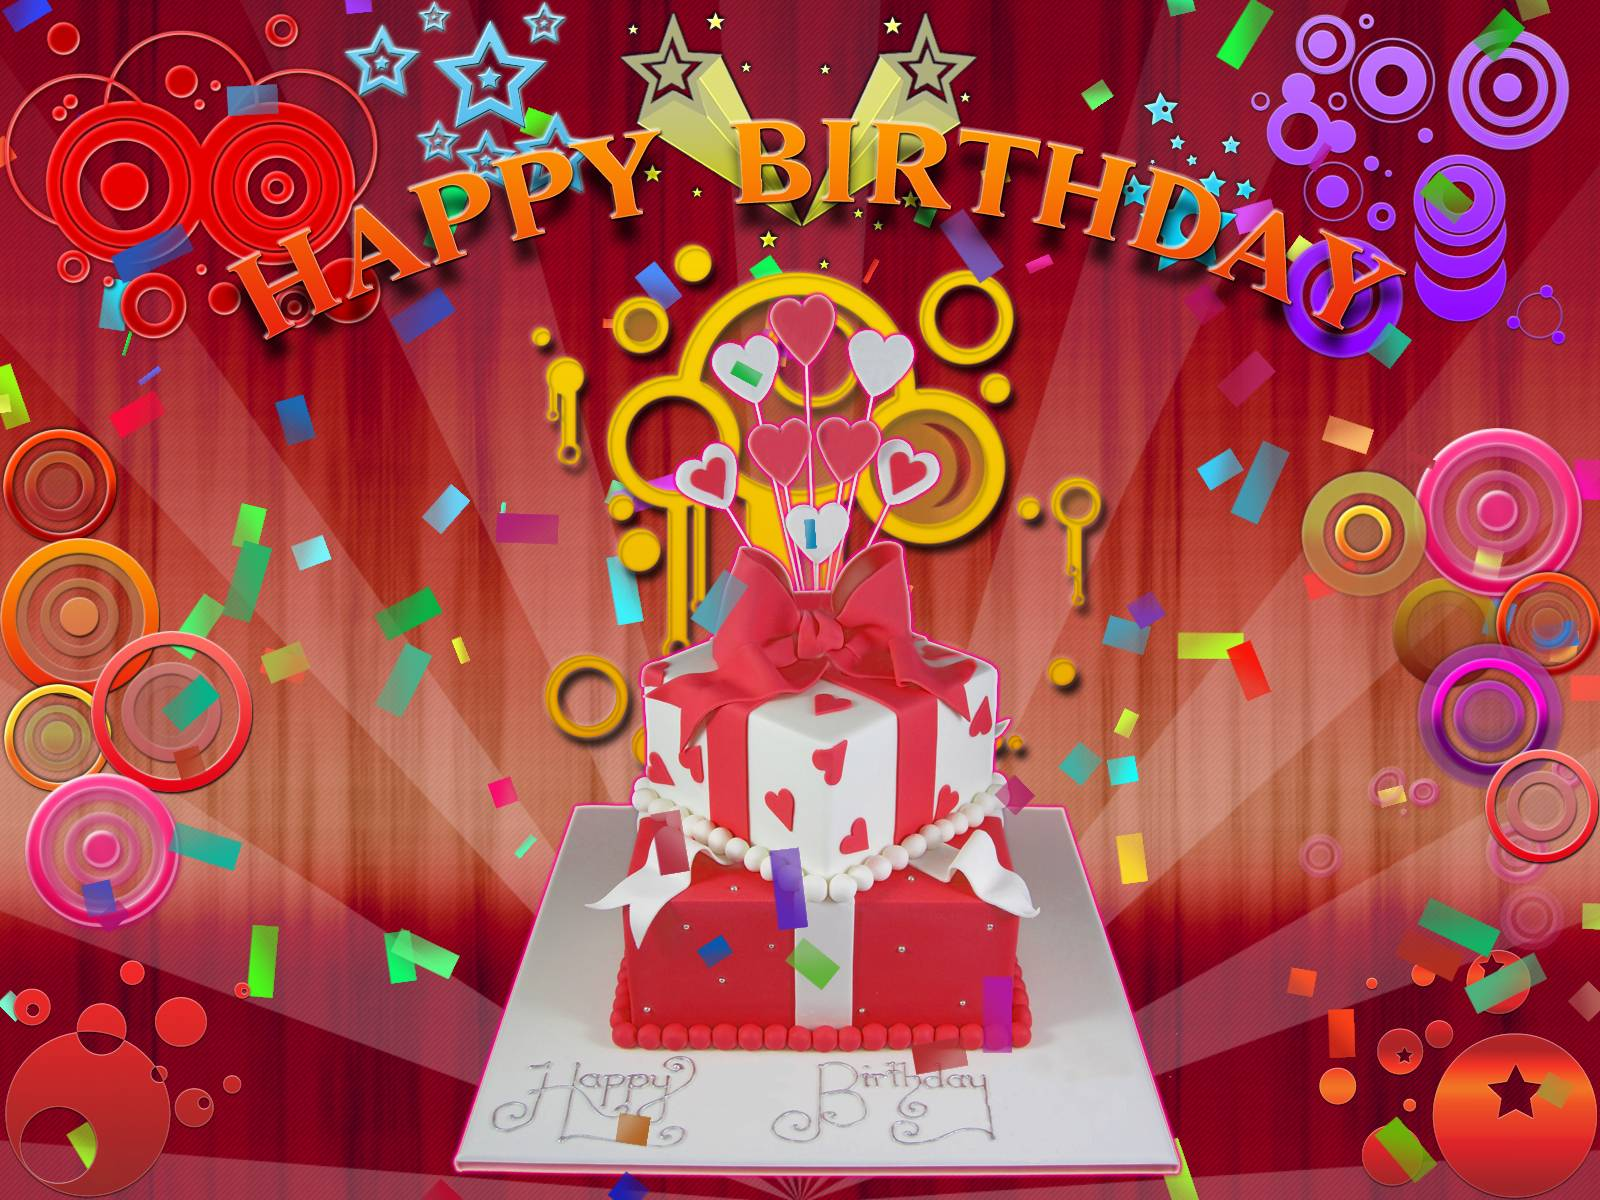 Wallpaper download birthday - Wallpapers For Happy Birthday Animated Wallpaper Download